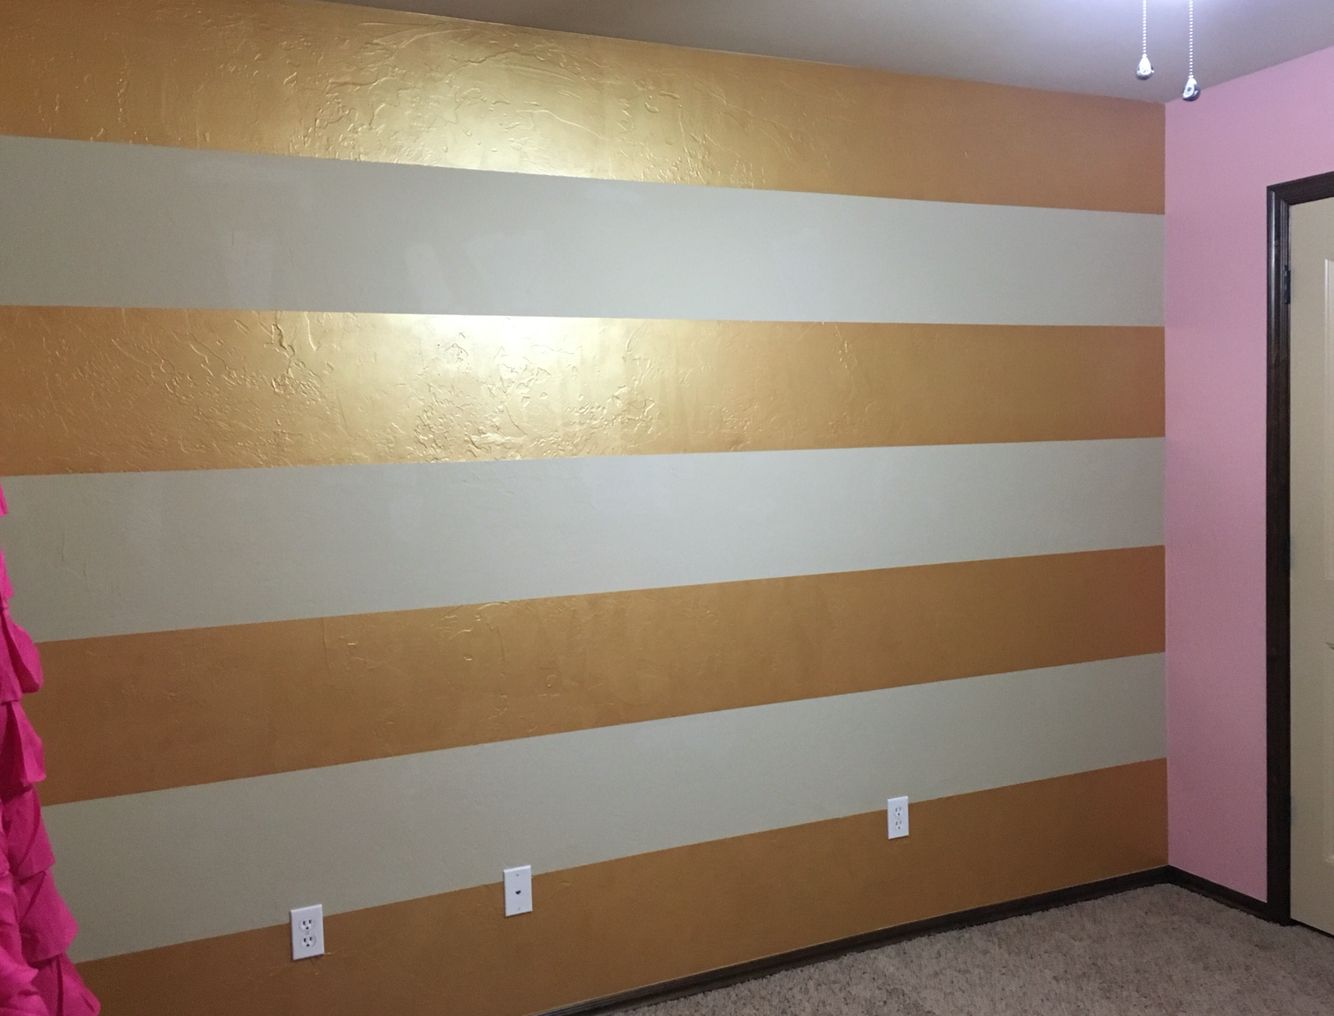 Sherwin Williams Metallic Impressions Gold Glaze Gold Painted Walls Metallic Gold Wall Paint Gold Striped Walls